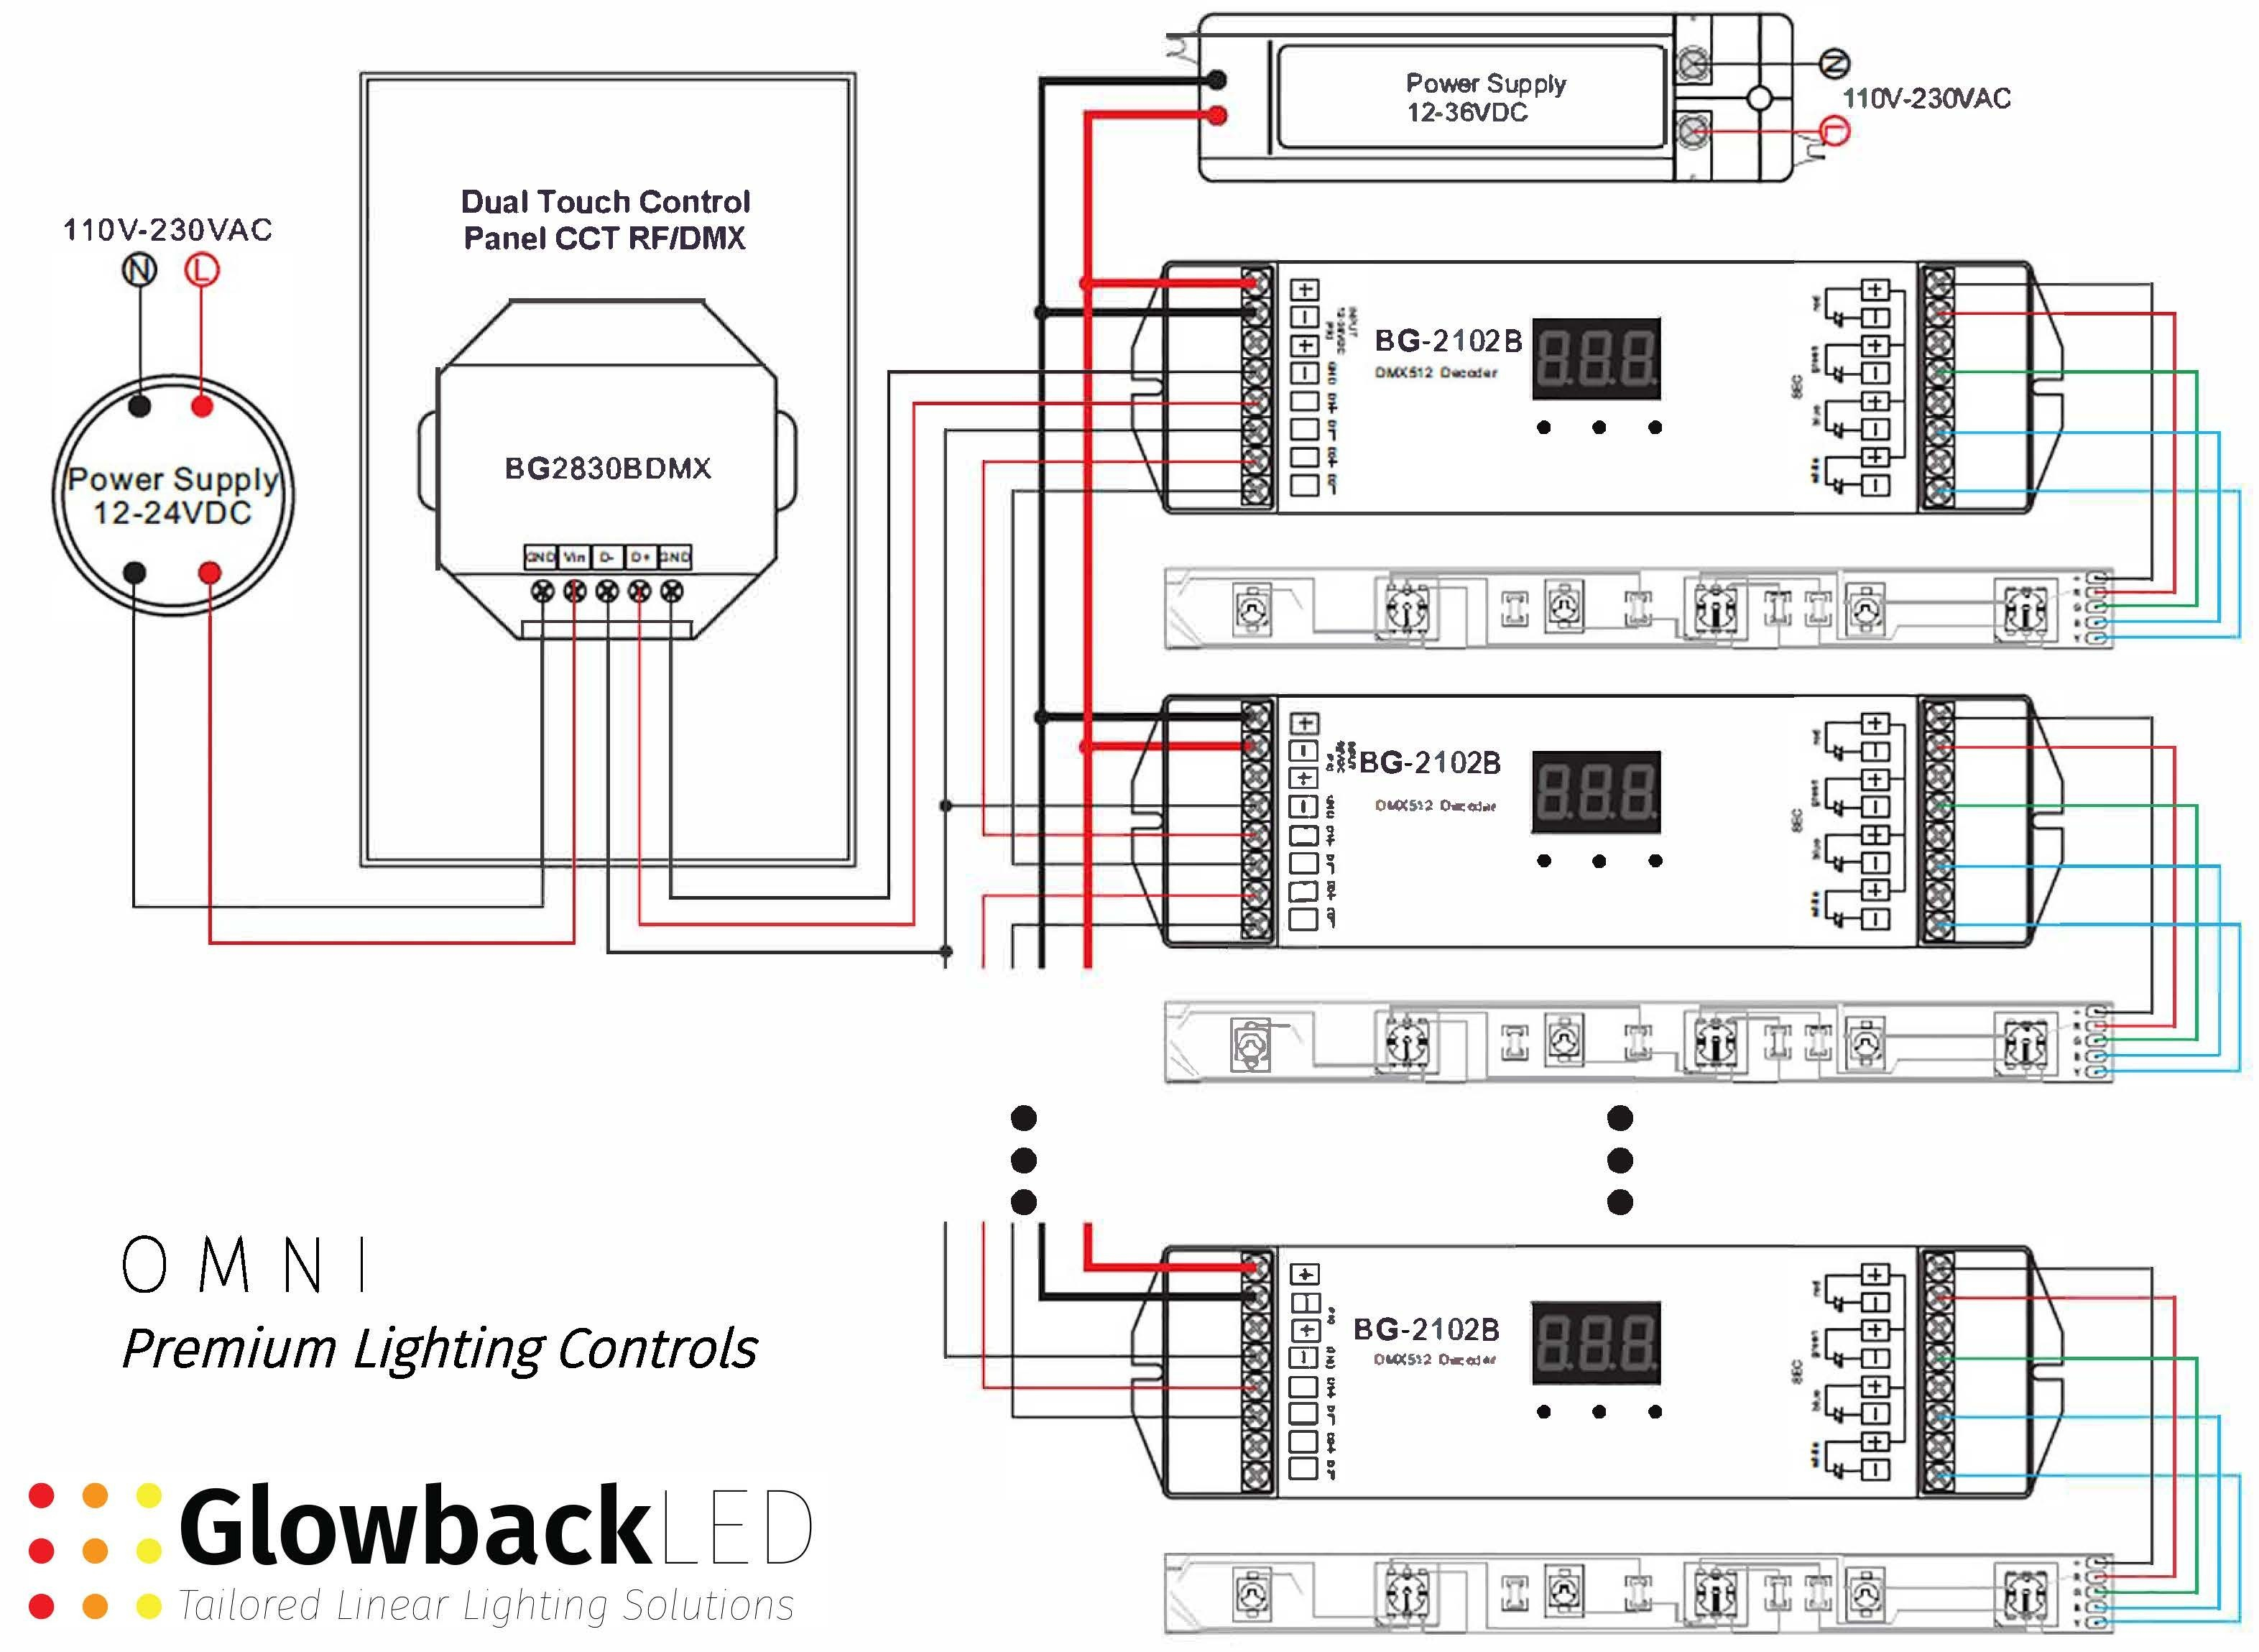 Dmx Switch Diagram - Wiring Diagram View on cat5 diagram, 12v diesel fuel schematics diagram, rj45 connector diagram, mazda tribute cruise control harness diagram, secondary ignition pickup sensor probe schematic diagram, mazda 6 throttle connection diagram,